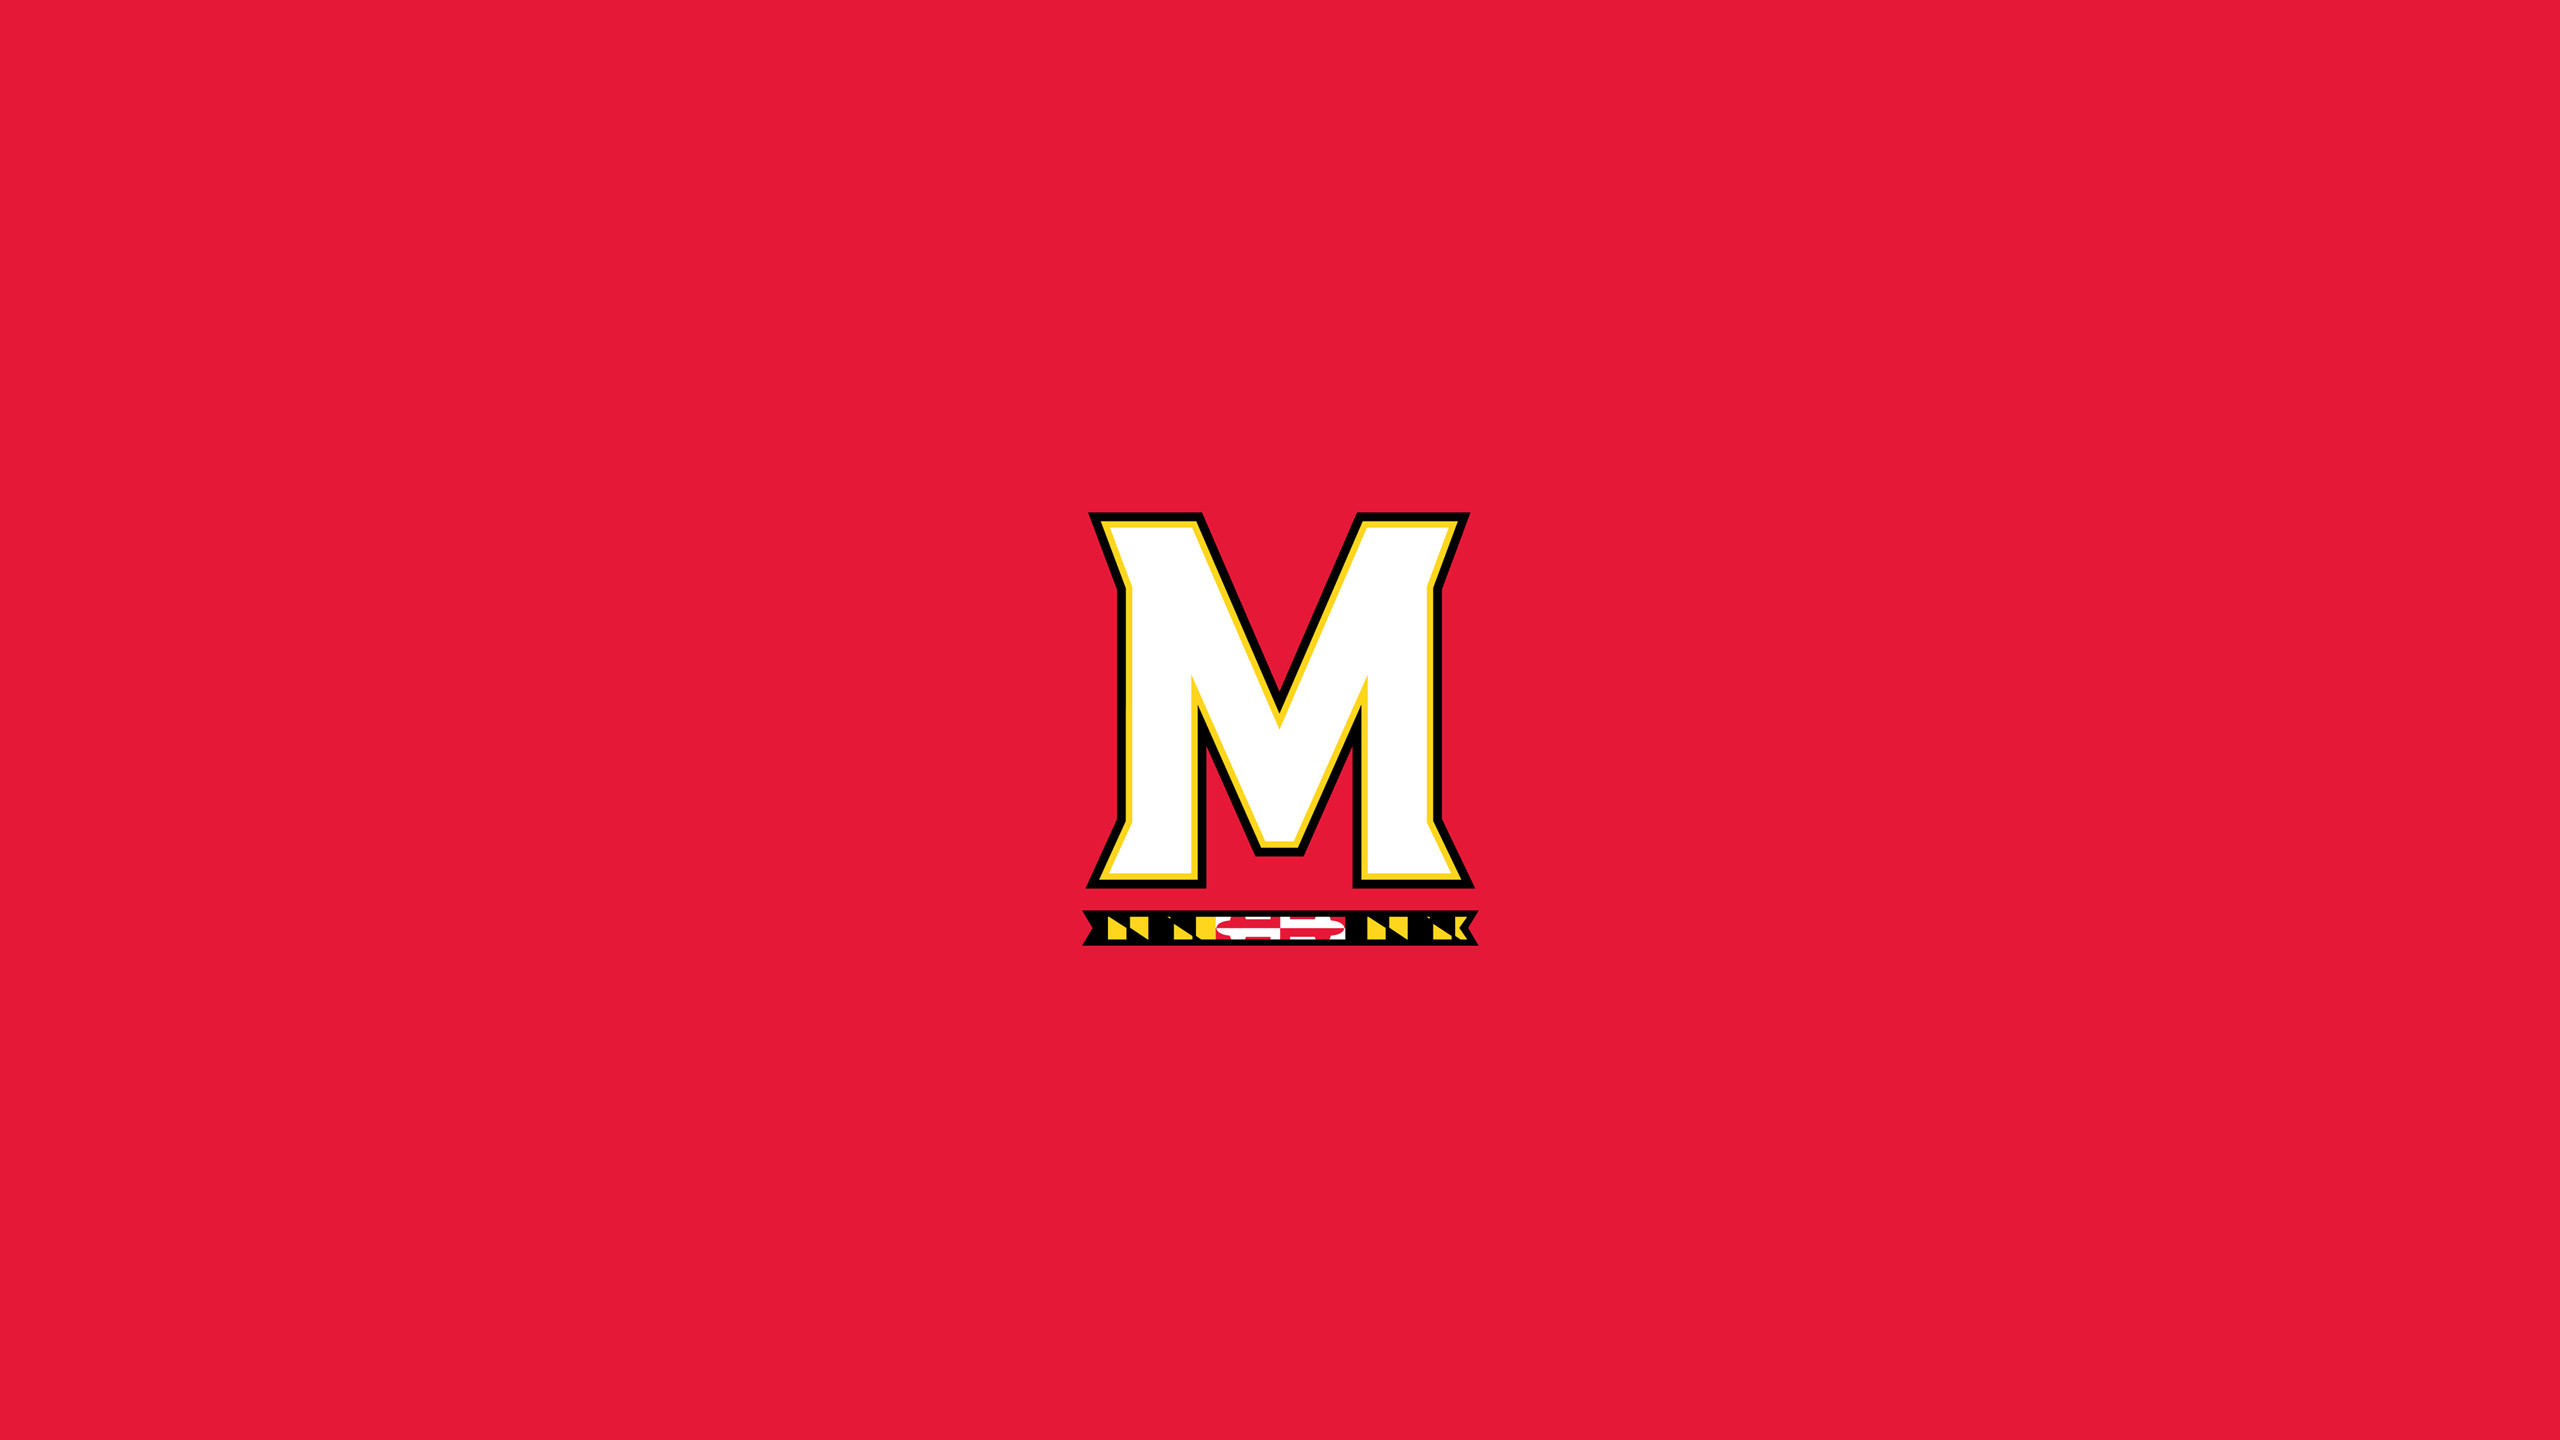 University of Maryland Wallpaper 57 images 2560x1440